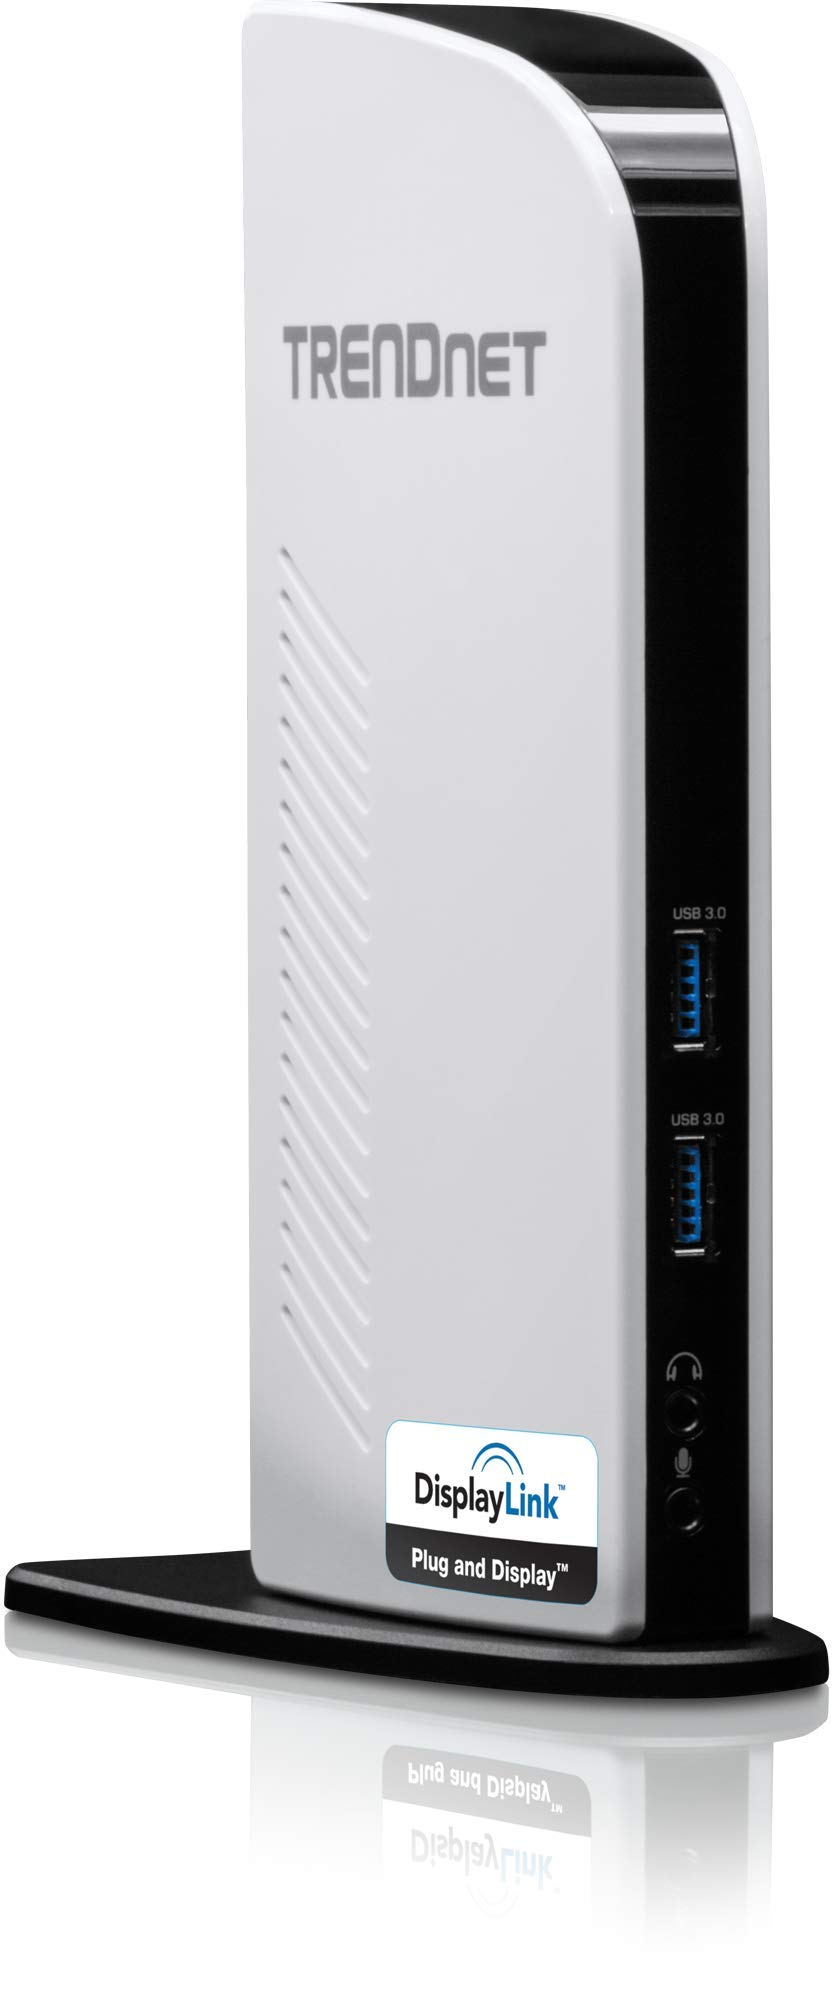 TRENDnet USB 3.0 Universal Docking Station, Dual Video Outputs, Windows and Mac (10.9 - 10.13.3) Compatible, HDMI and DVI/VGA, Gigabit Ethernet, Audio, Plug & Play, TU3-DS2 by TRENDnet